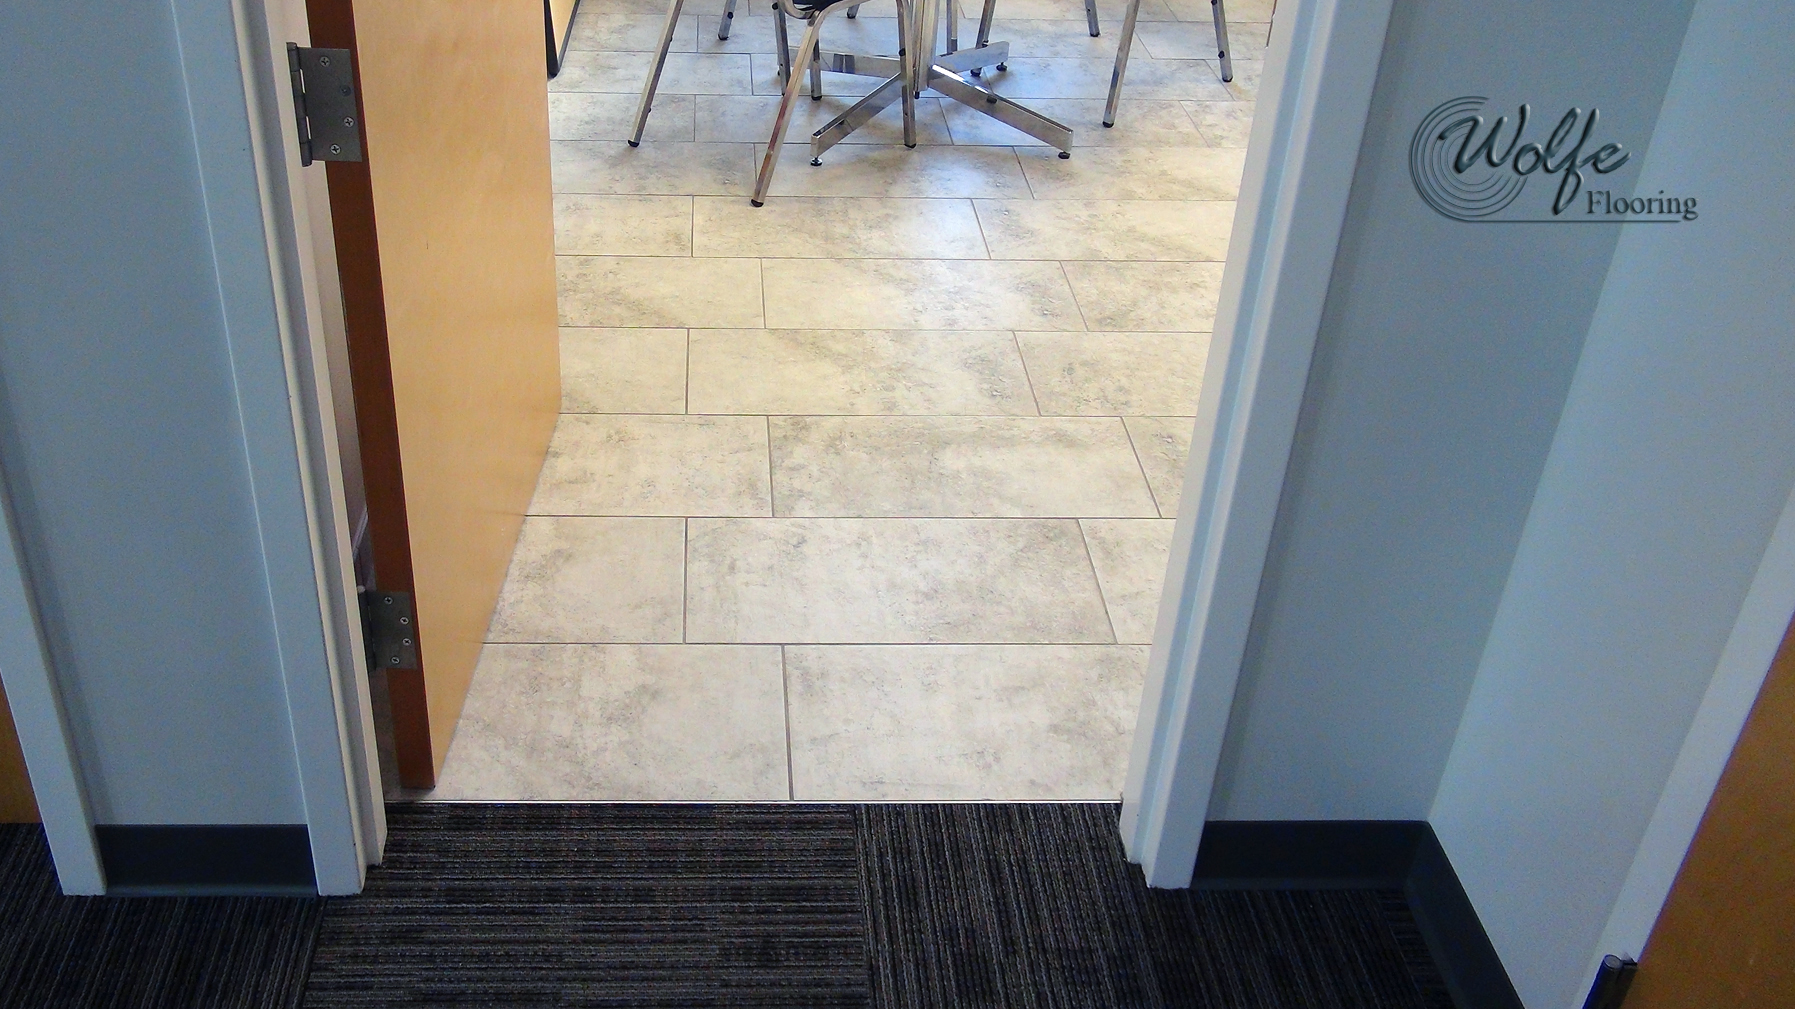 Flags, Carpet Tile, and Ceramic Tile